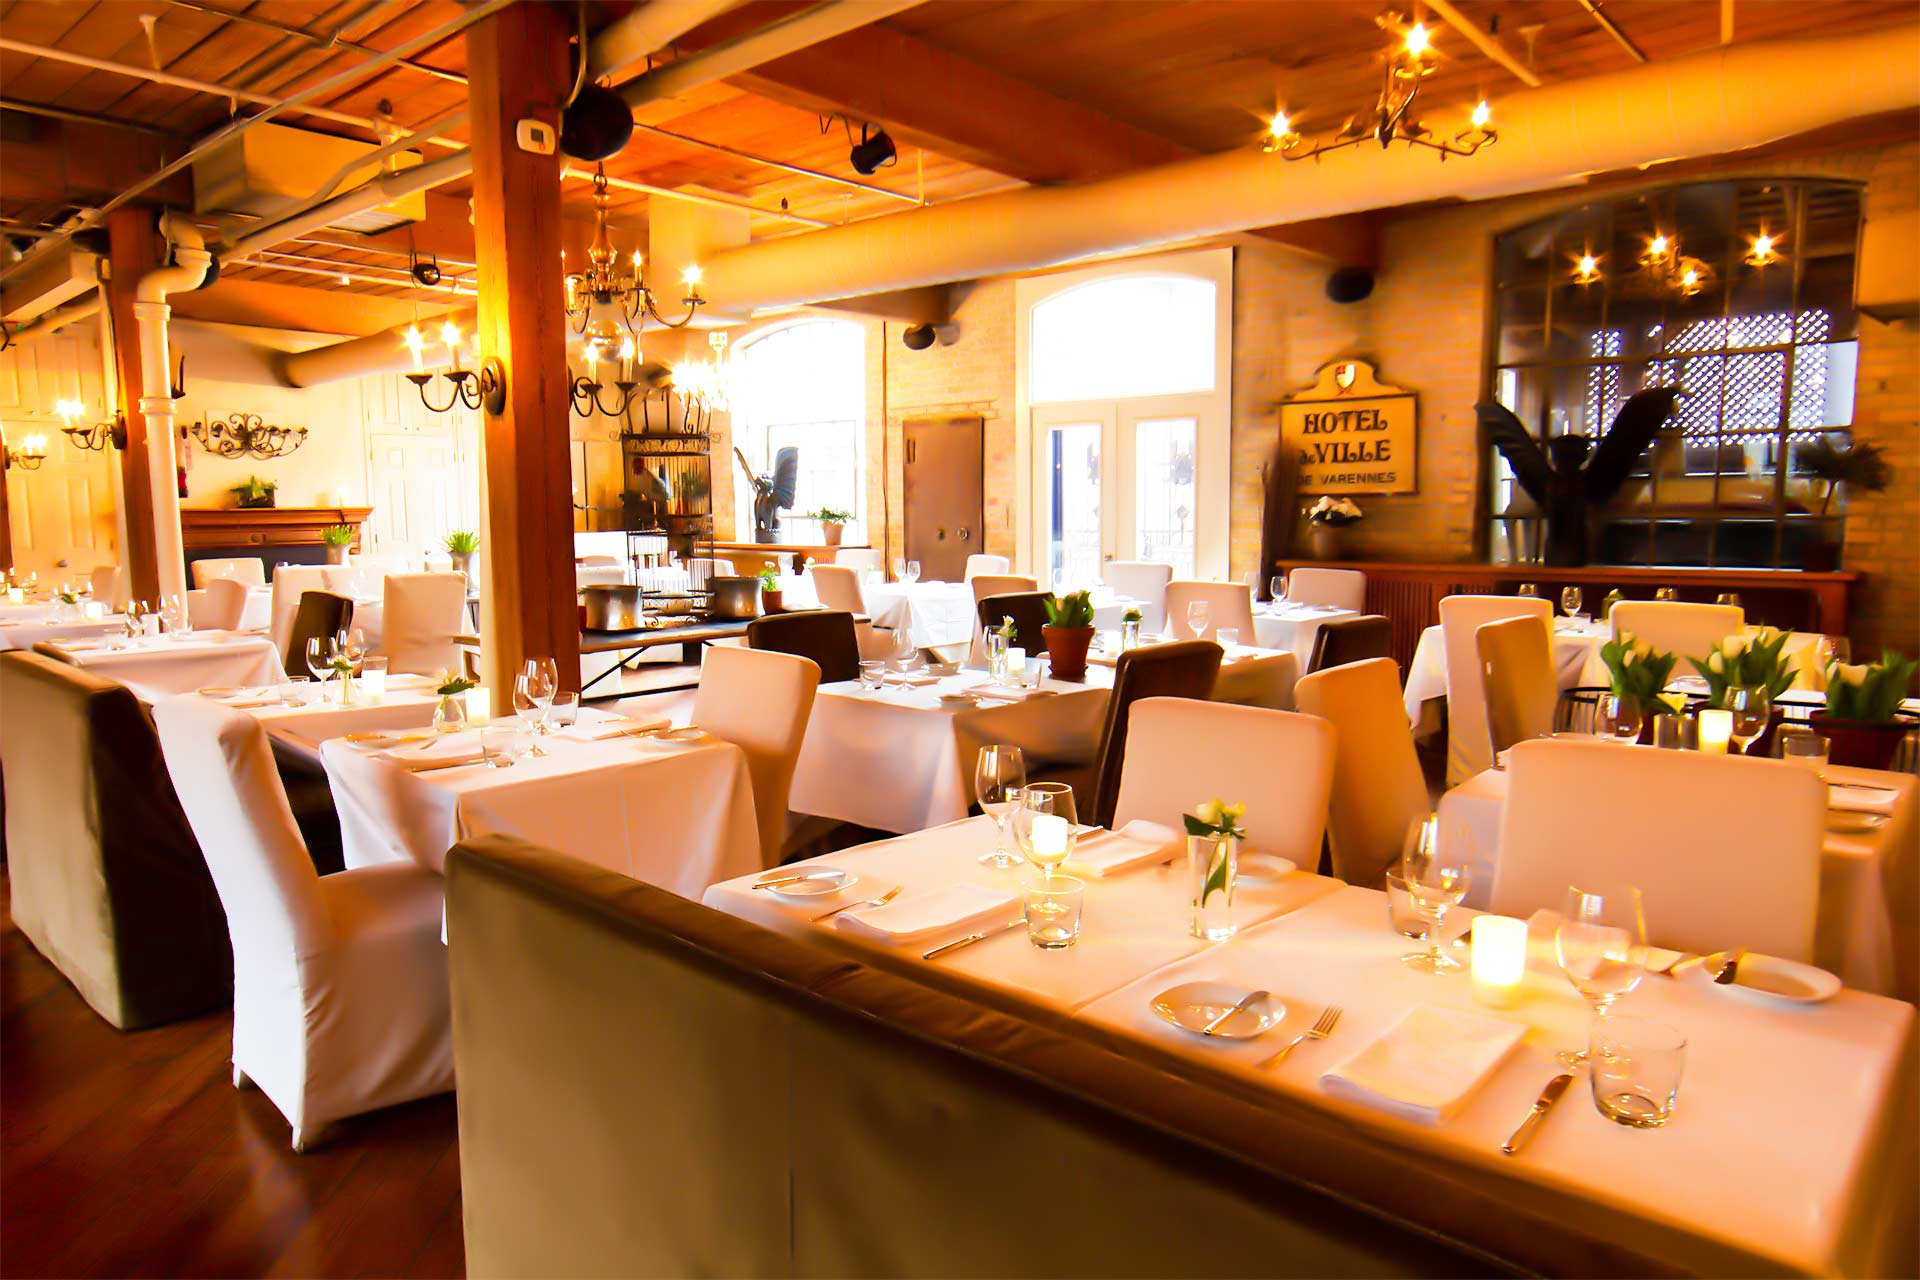 Toronto Event Spaces and Wedding Venues - Private Dining Room - Restaurant